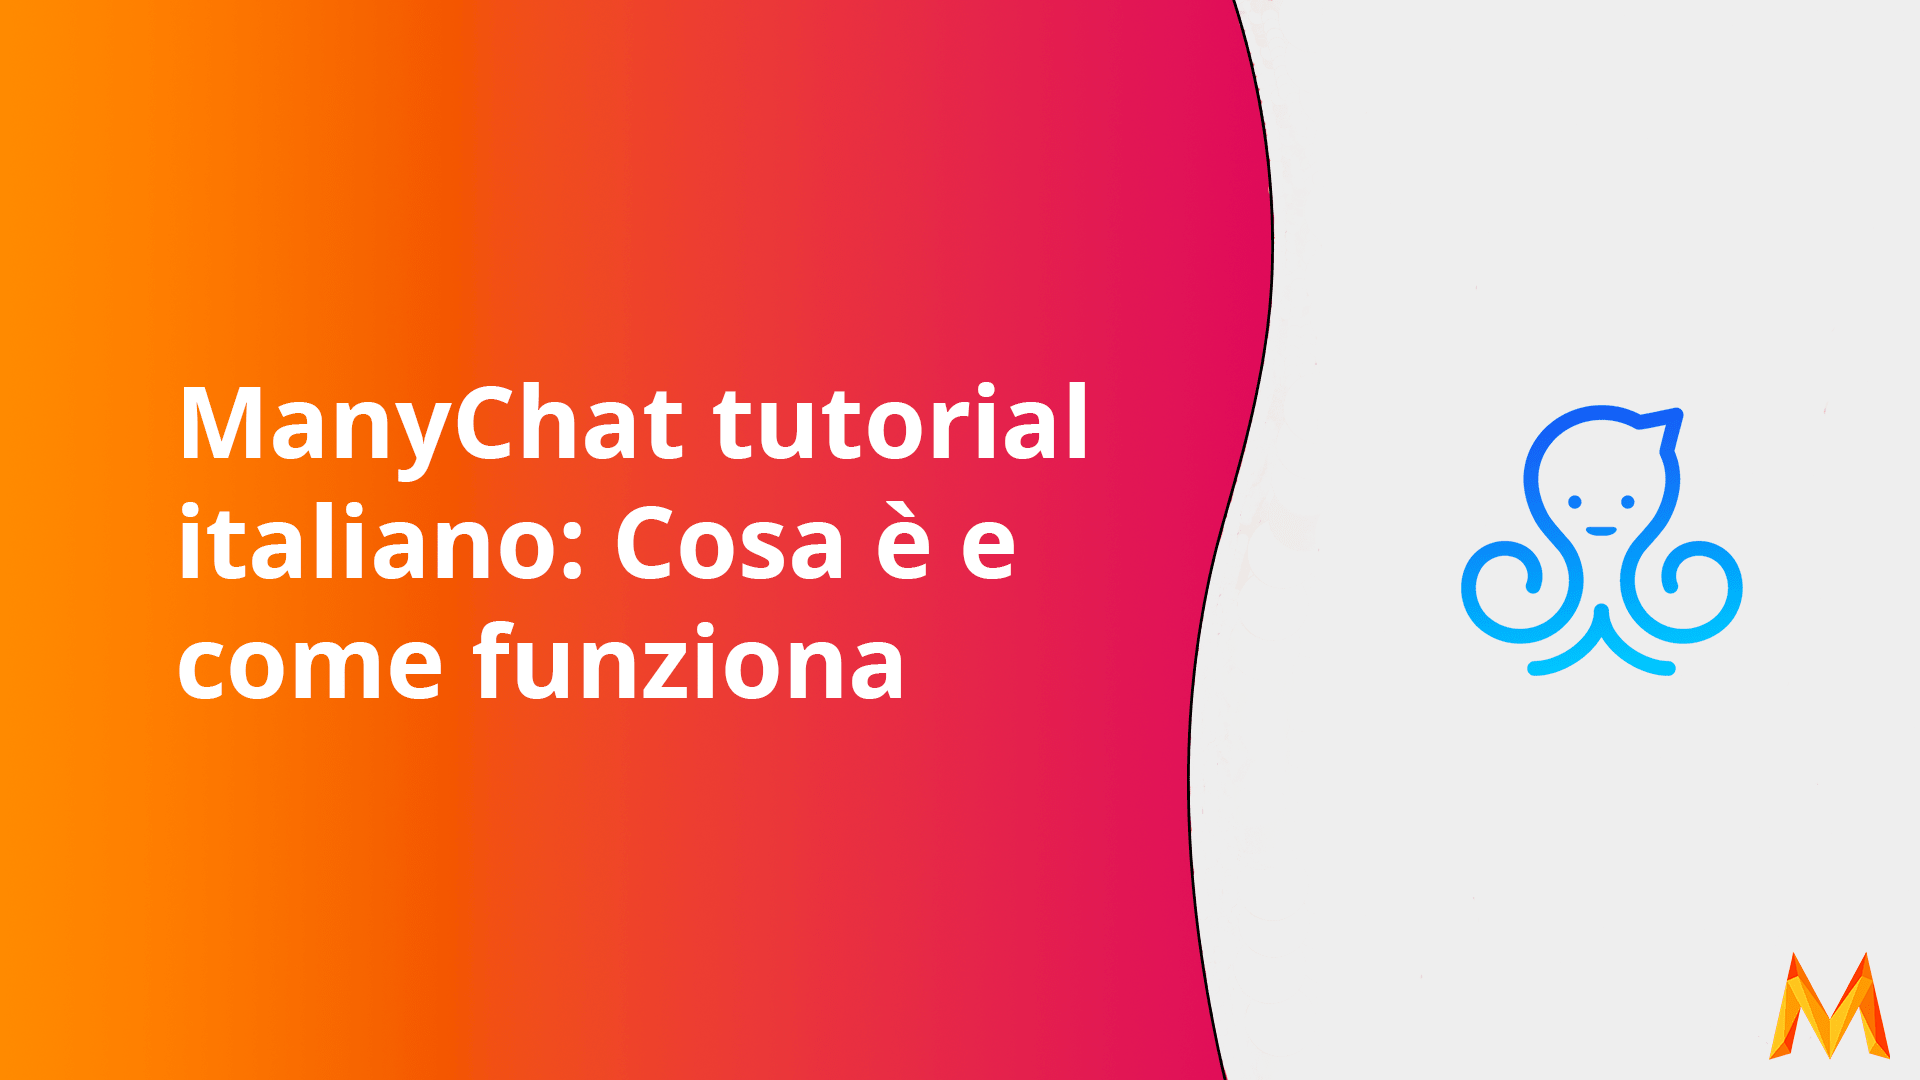 ManyChat tutorial italiano